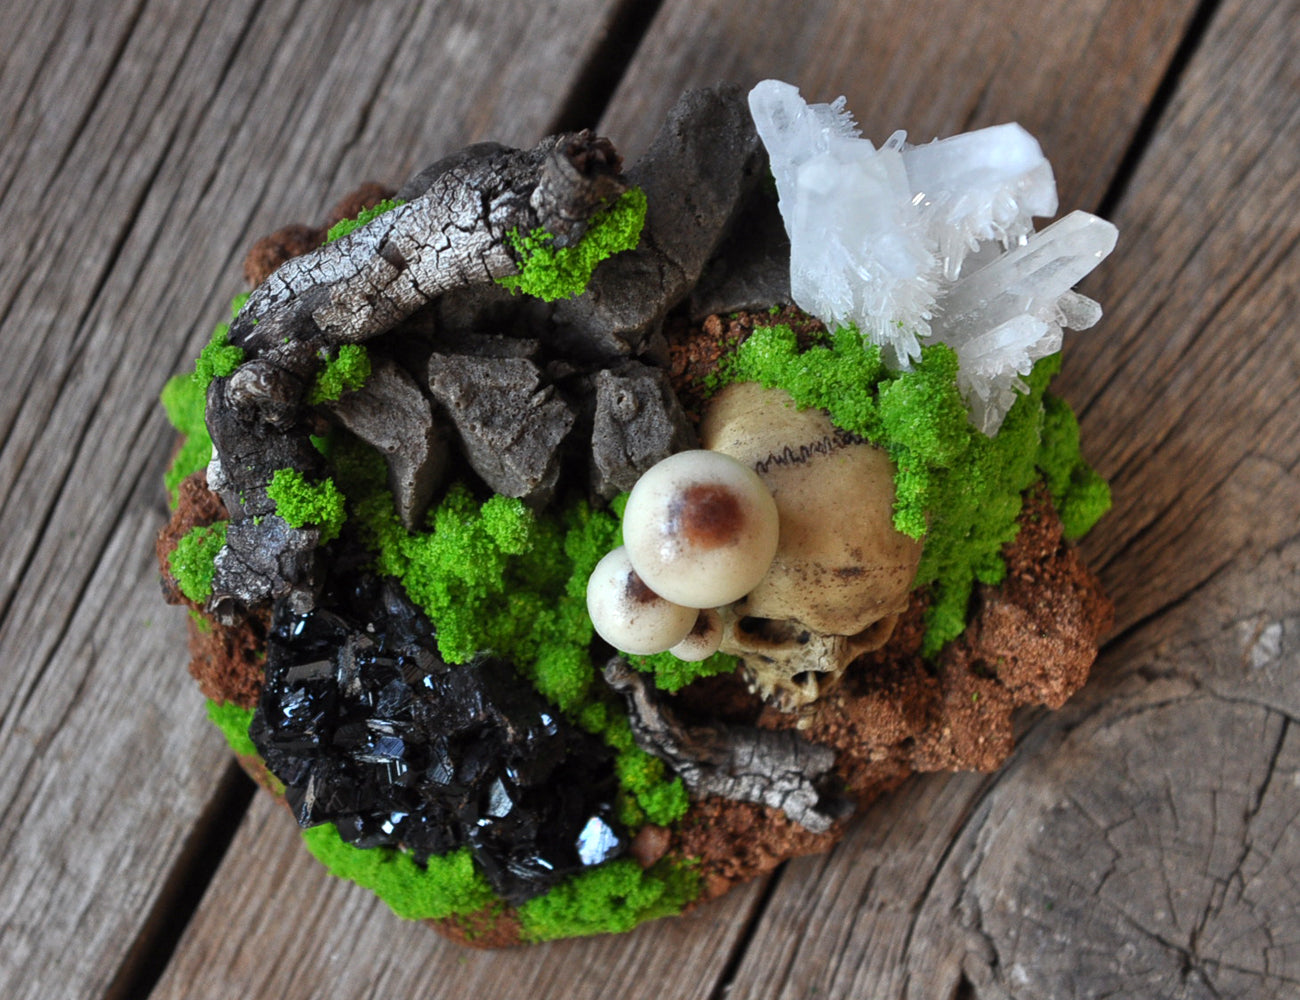 Realistic Skull and Mushrooms Art Object, Realistic Mossy and Rocks Home Decoration Object, Miniature Sculptures Resin Art, Quartz Crystal